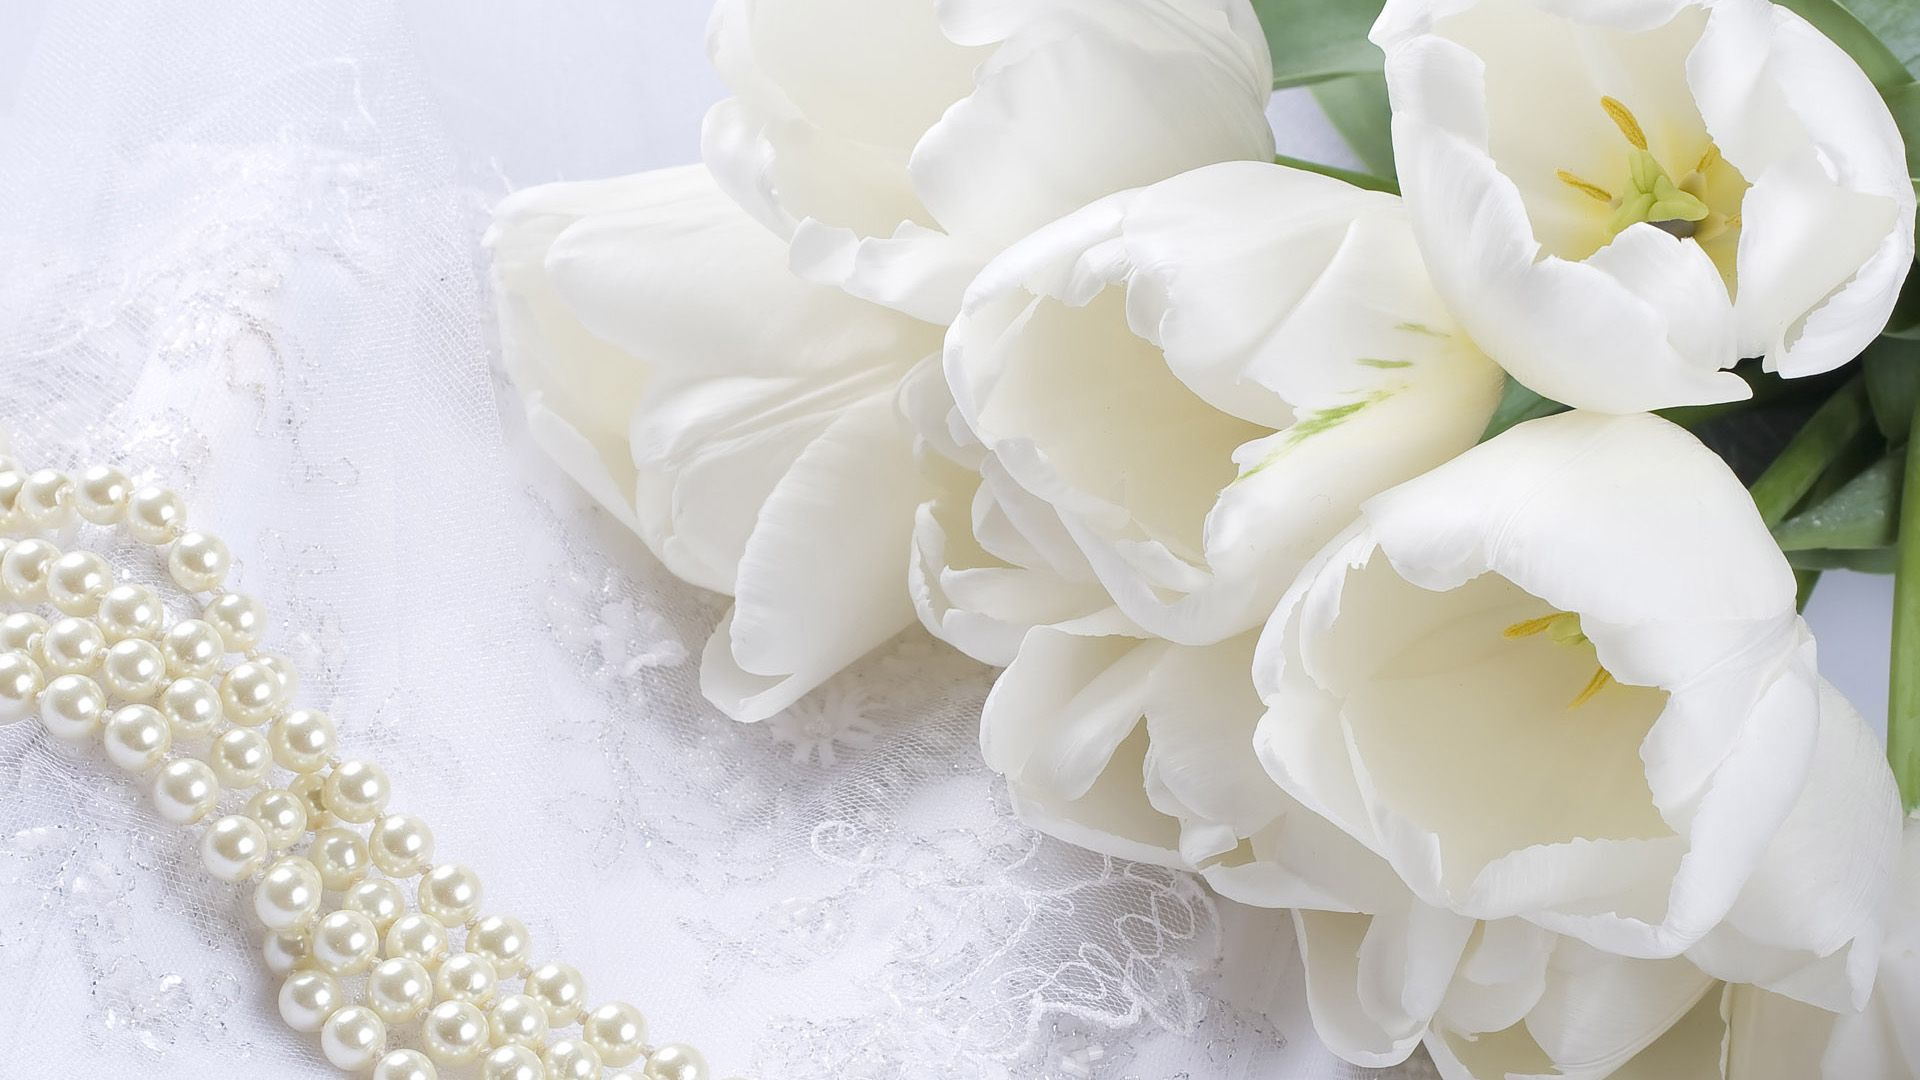 White Rose Wallpapers HD Pictures Flowers One HD Wallpaper ...